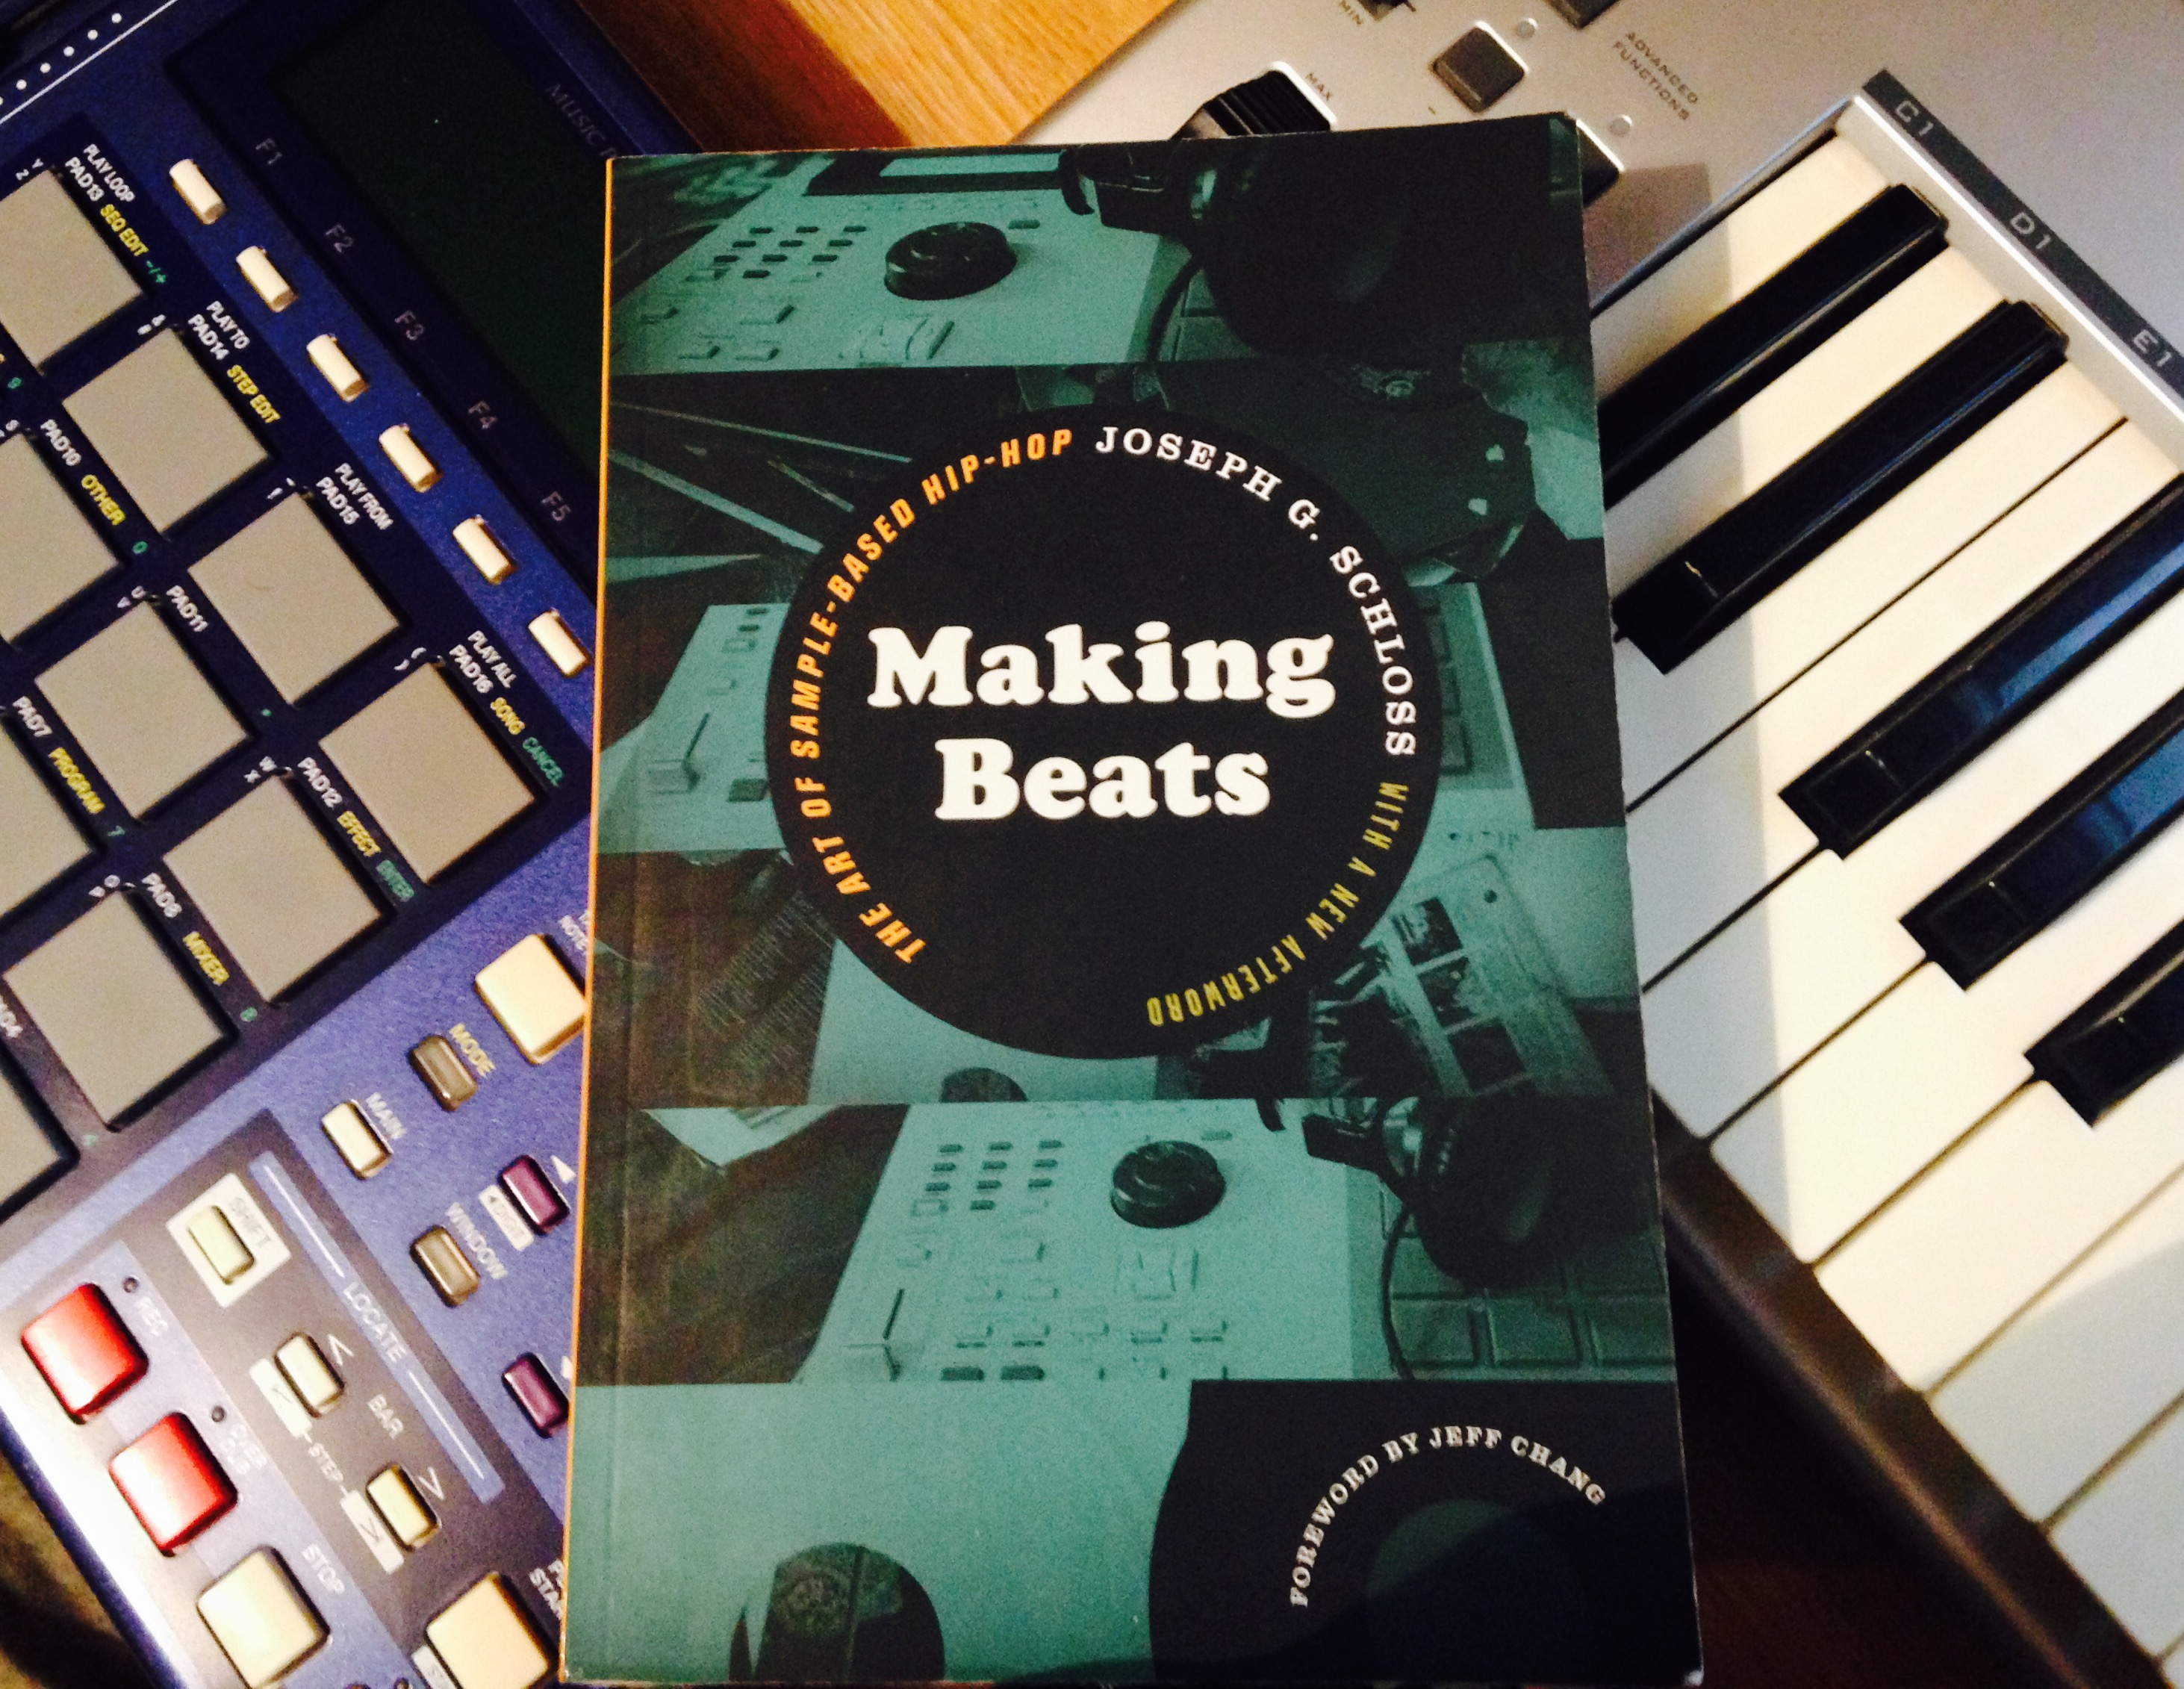 joseph g. schloss, 'making beats: the art of sample-based hip-hop